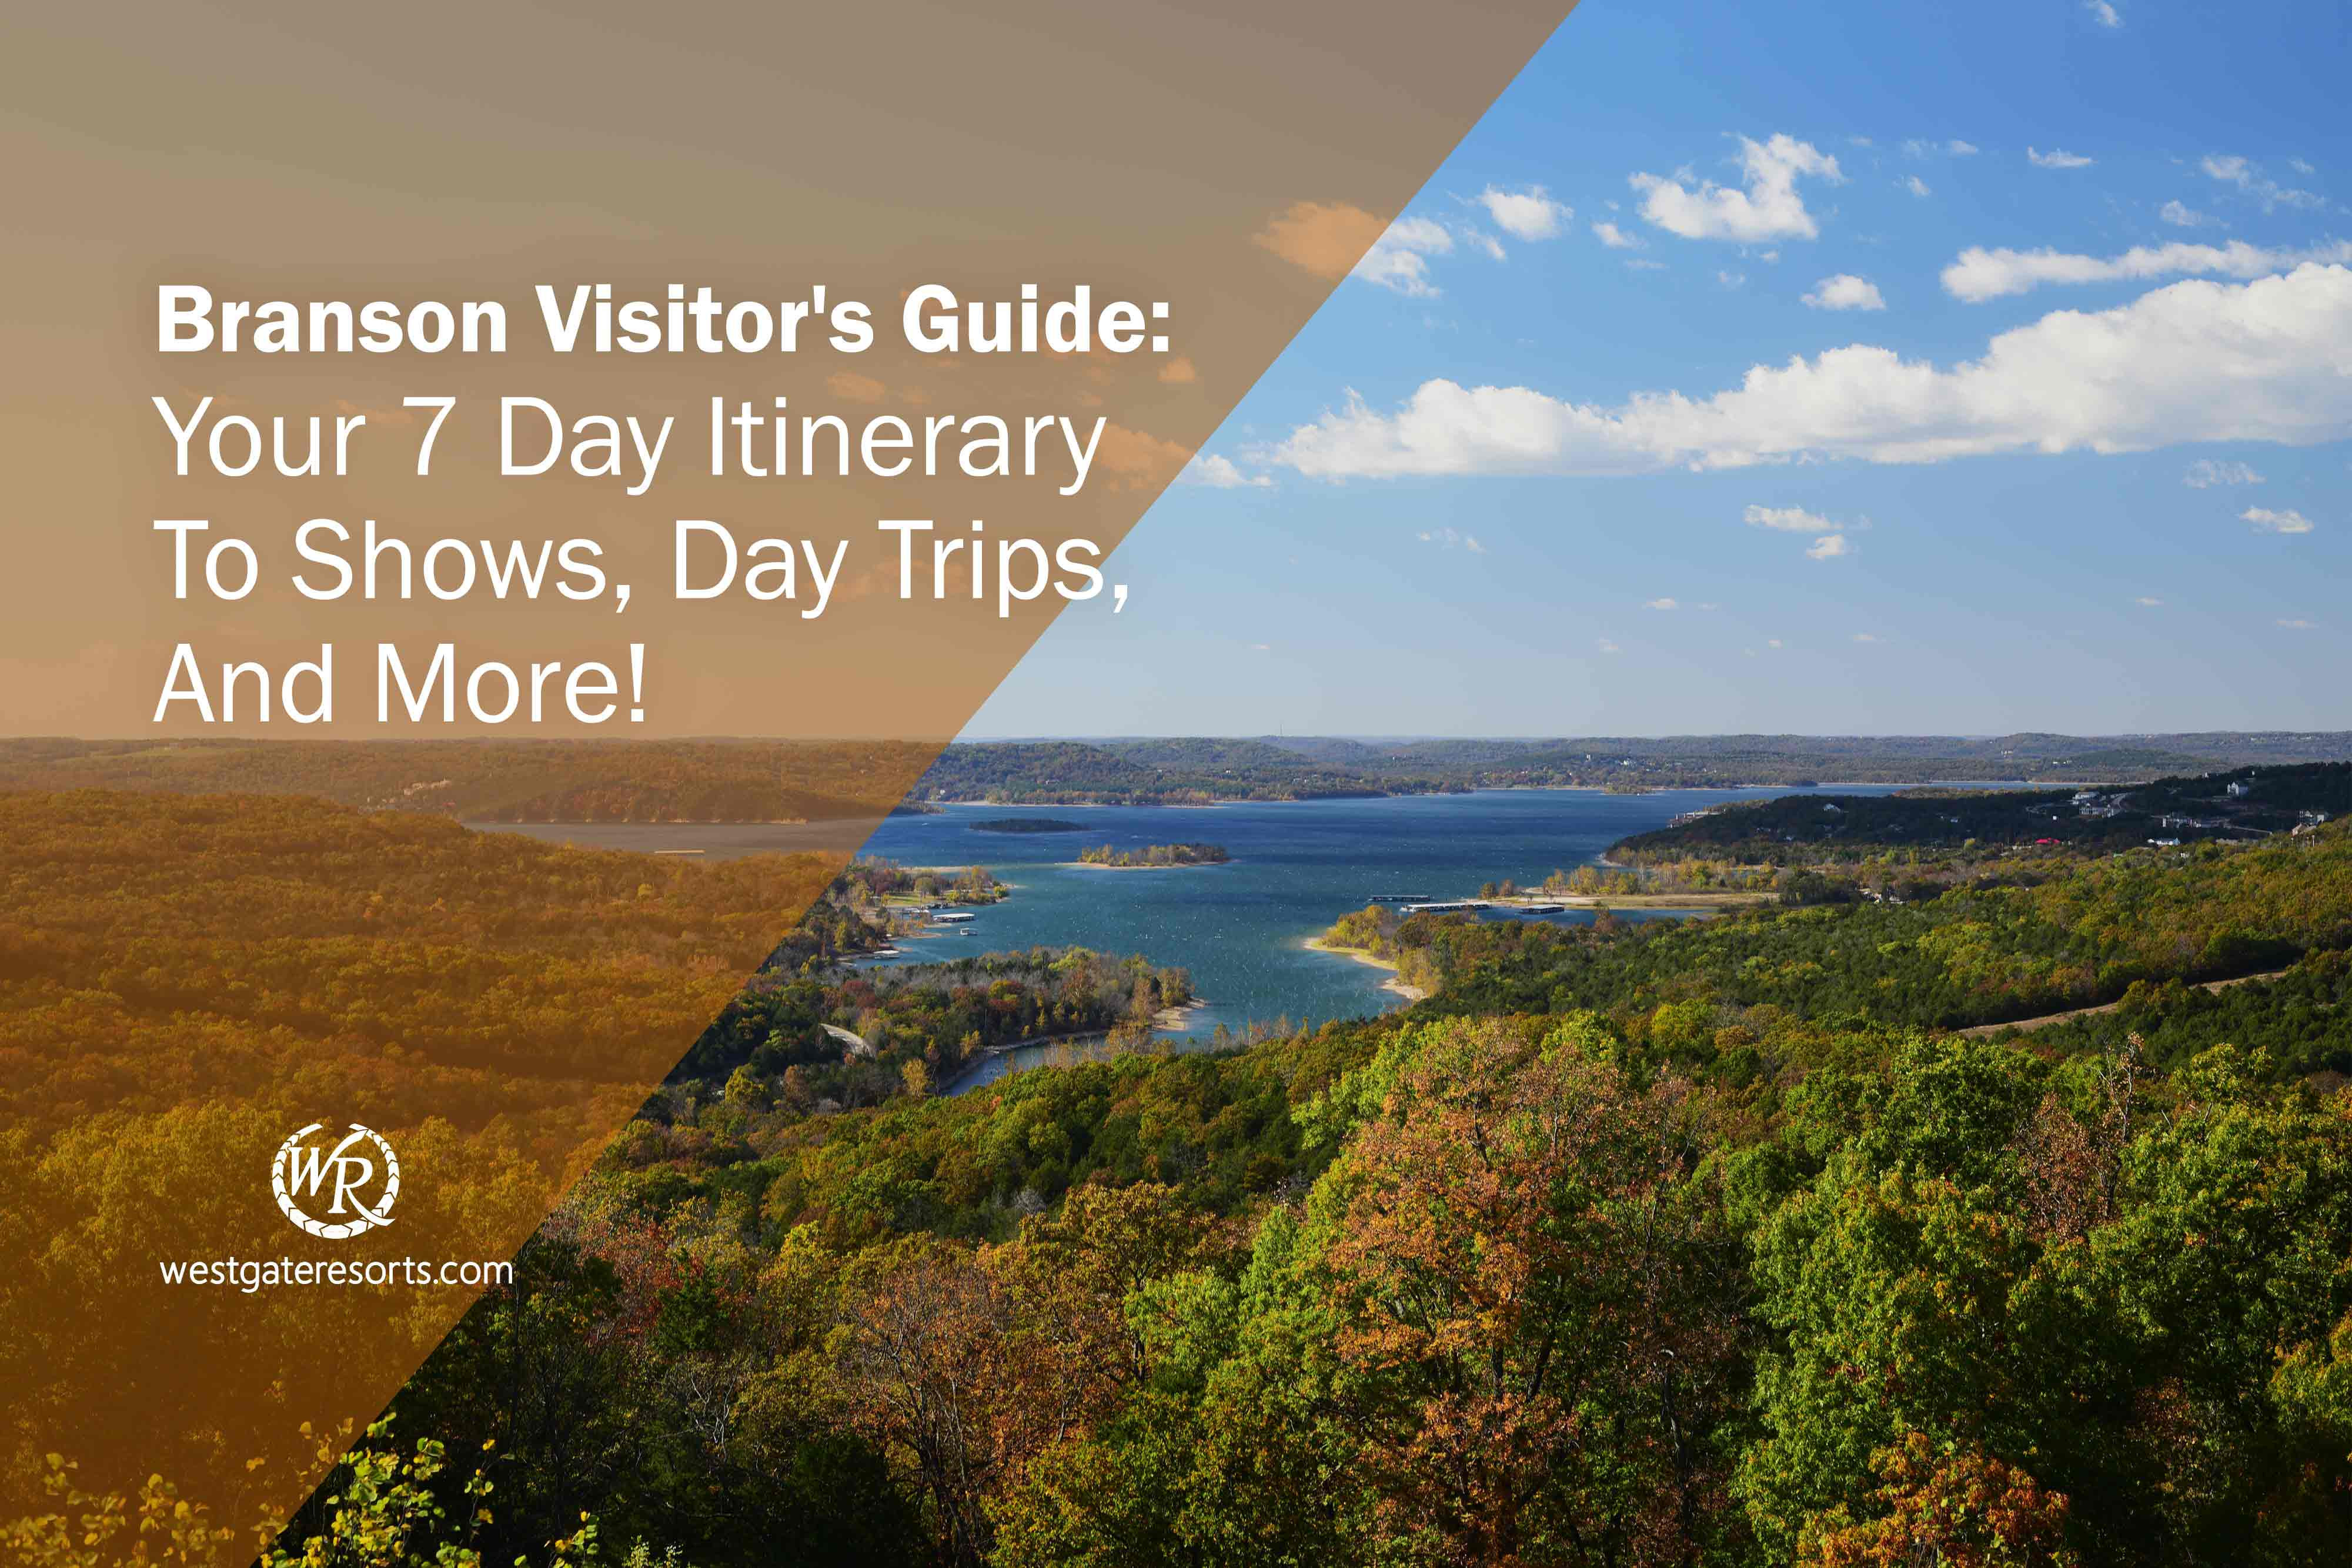 Branson Visitor's Guide: Your 7 Day Itinerary To Shows, Day Trips, And More!